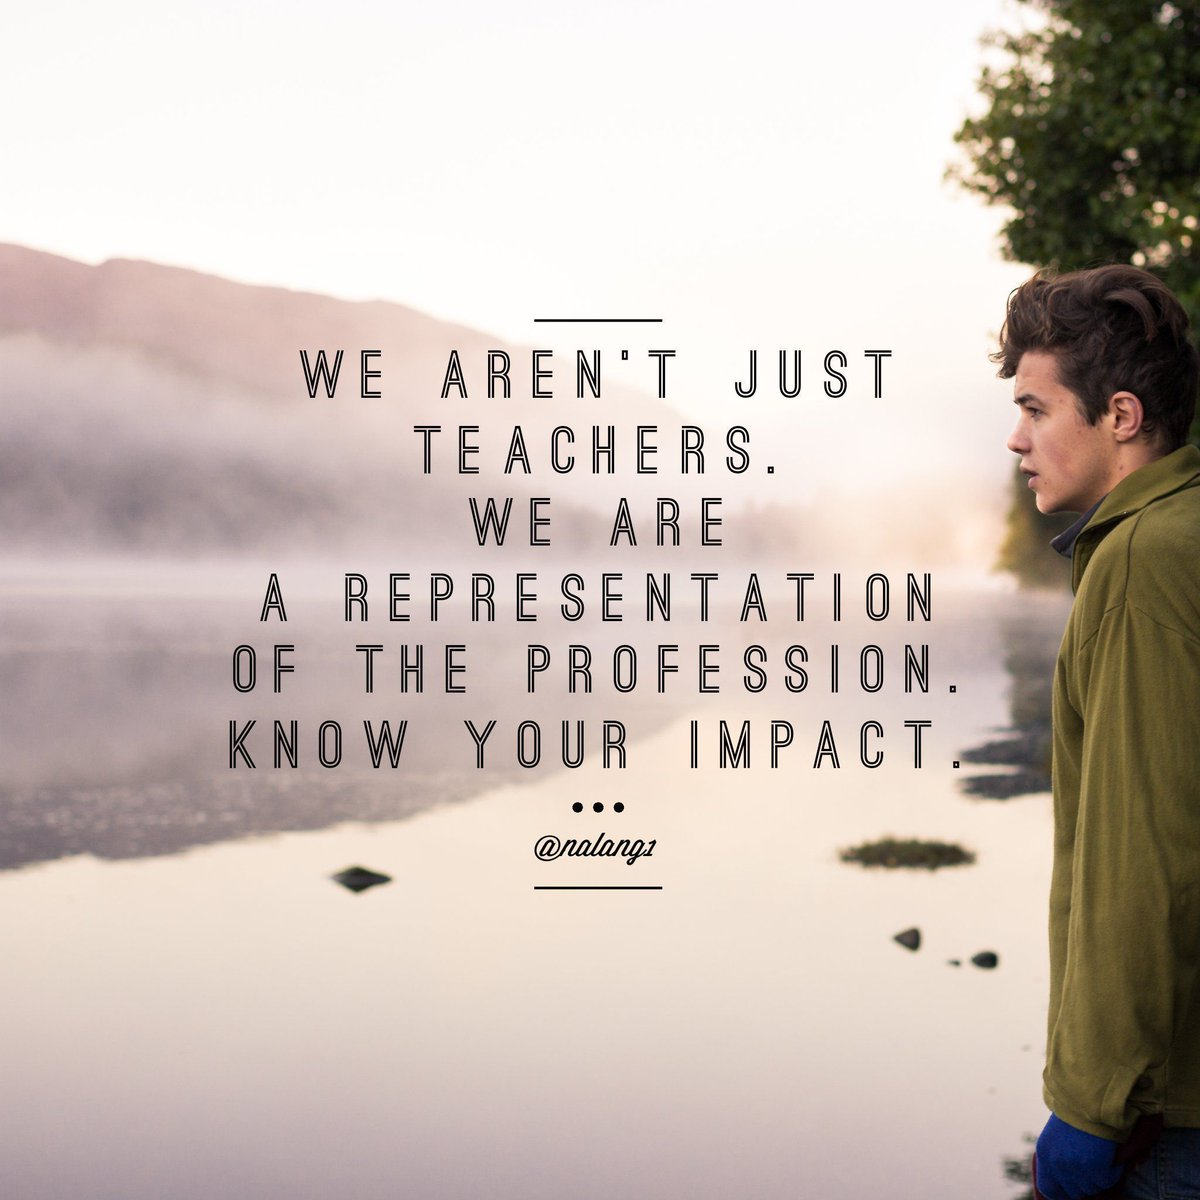 We aren&#39;t just teachers. We are a representation of learning, the profession, &amp; student preparedness. What&#39;s your impact? #education #edchat<br>http://pic.twitter.com/B2vXstVAfu